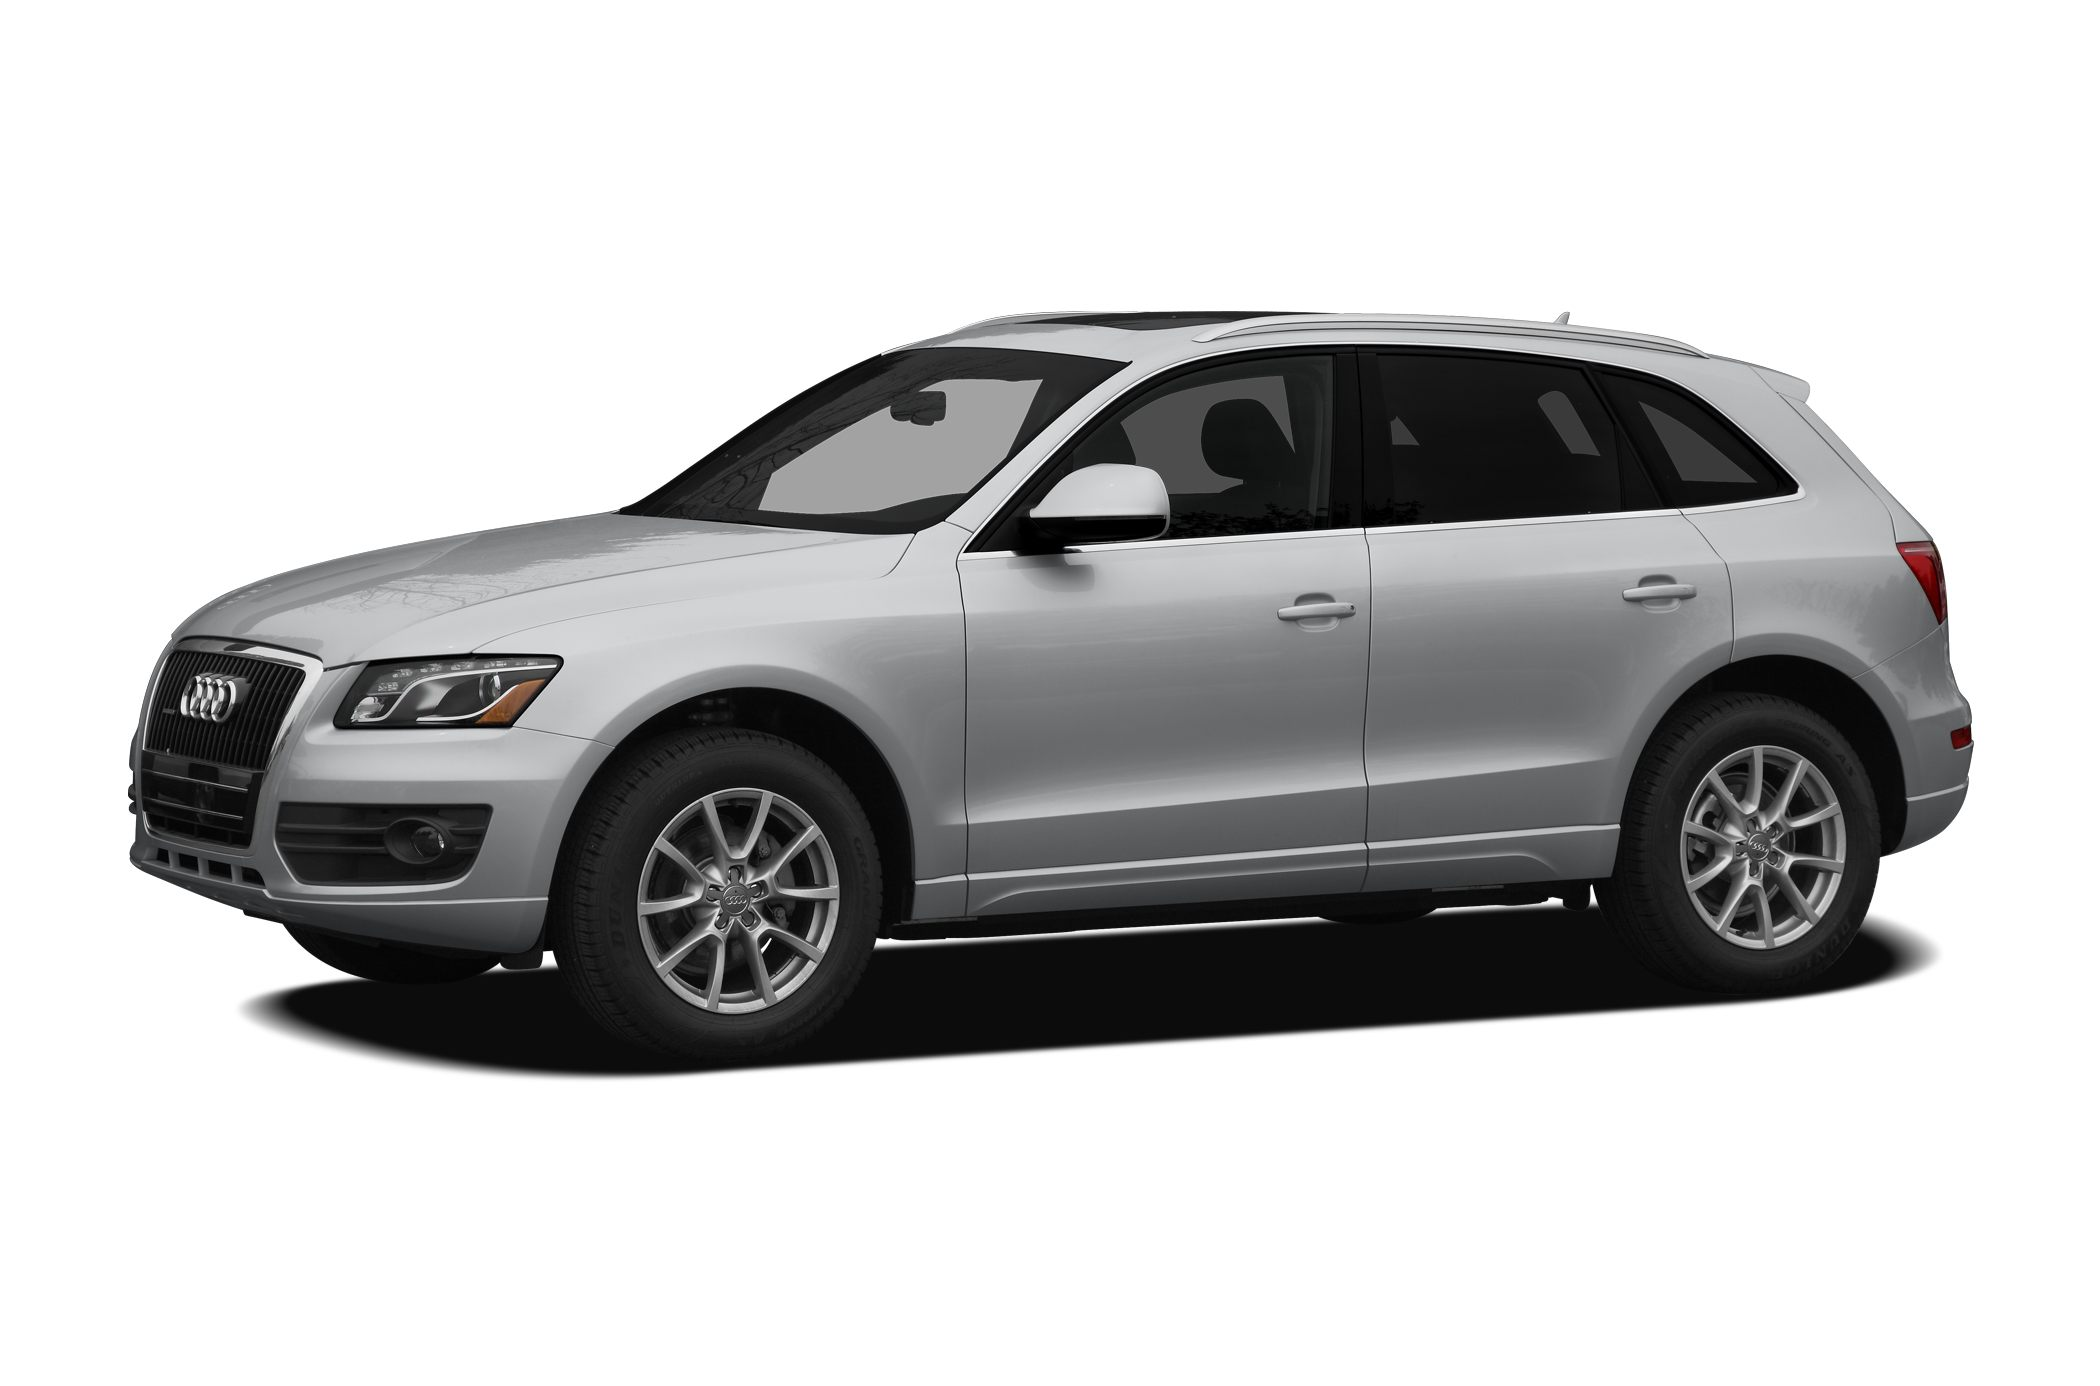 2012 Audi Q5 20T quattro Premium Proud to be named 2016 DEALER of the YEAR in the used vehicle ca